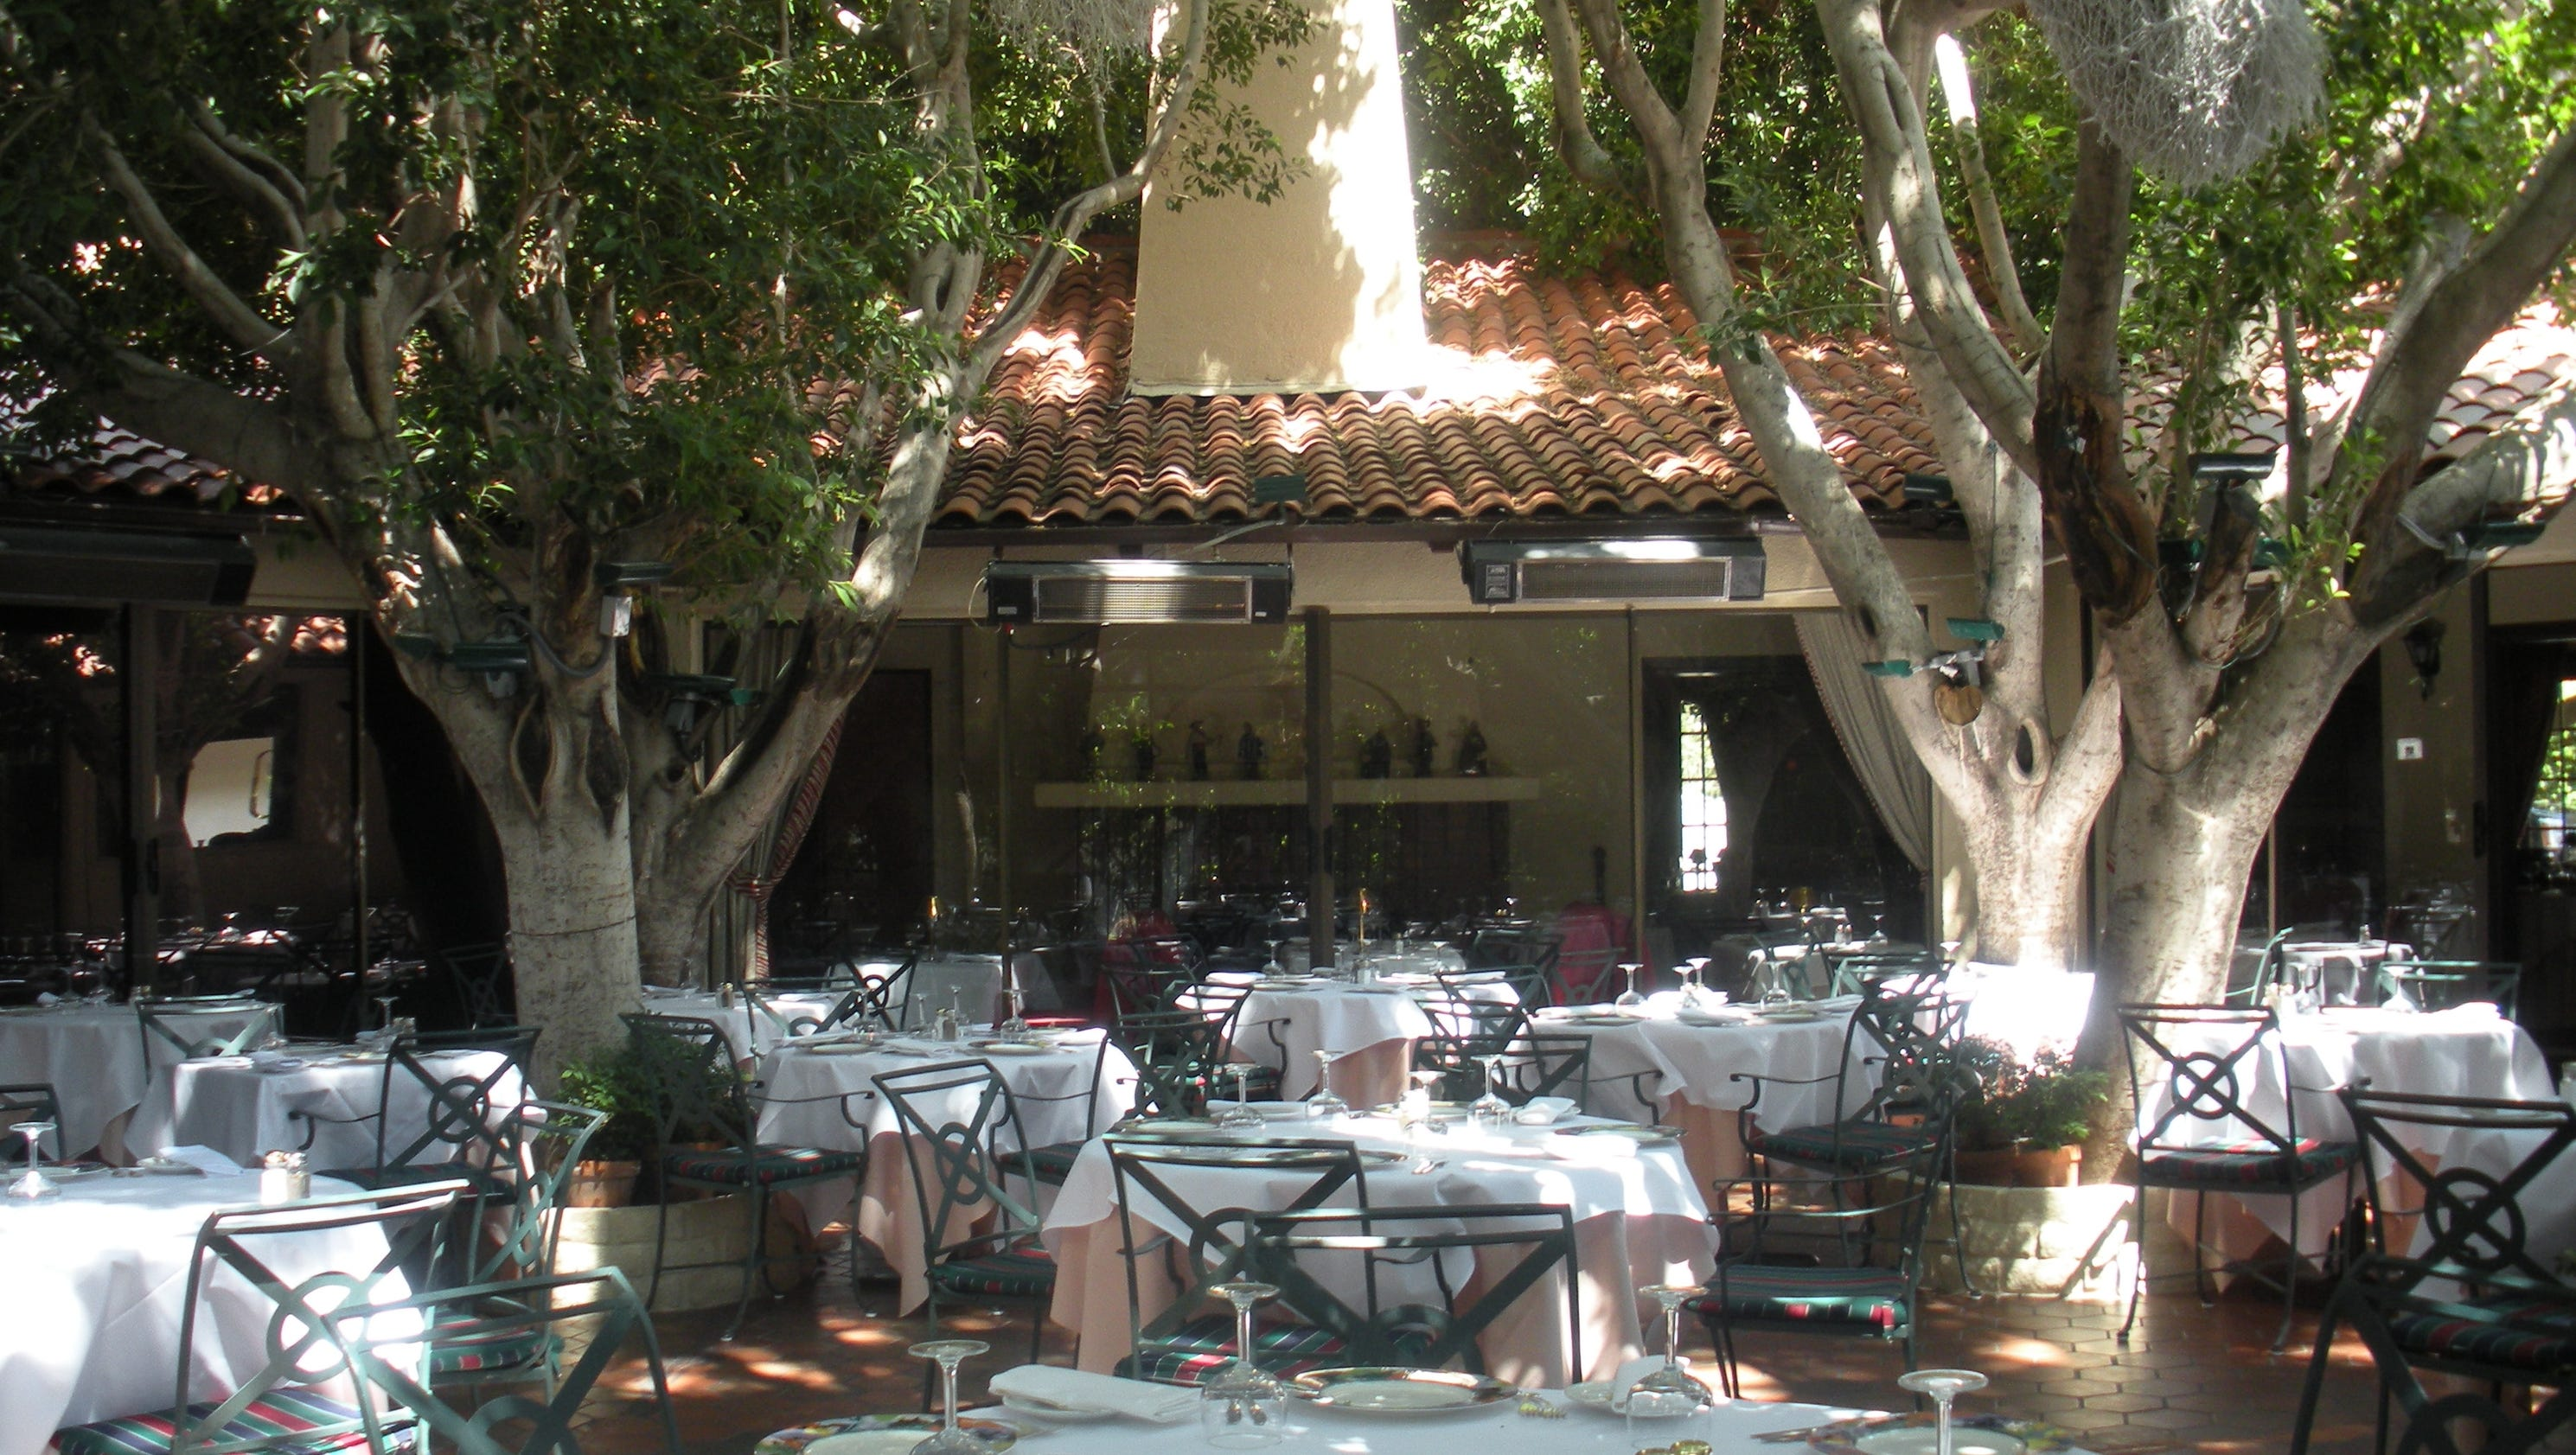 French tourism on the rise in palm springs - Le patio restaurant montreuil sur mer ...